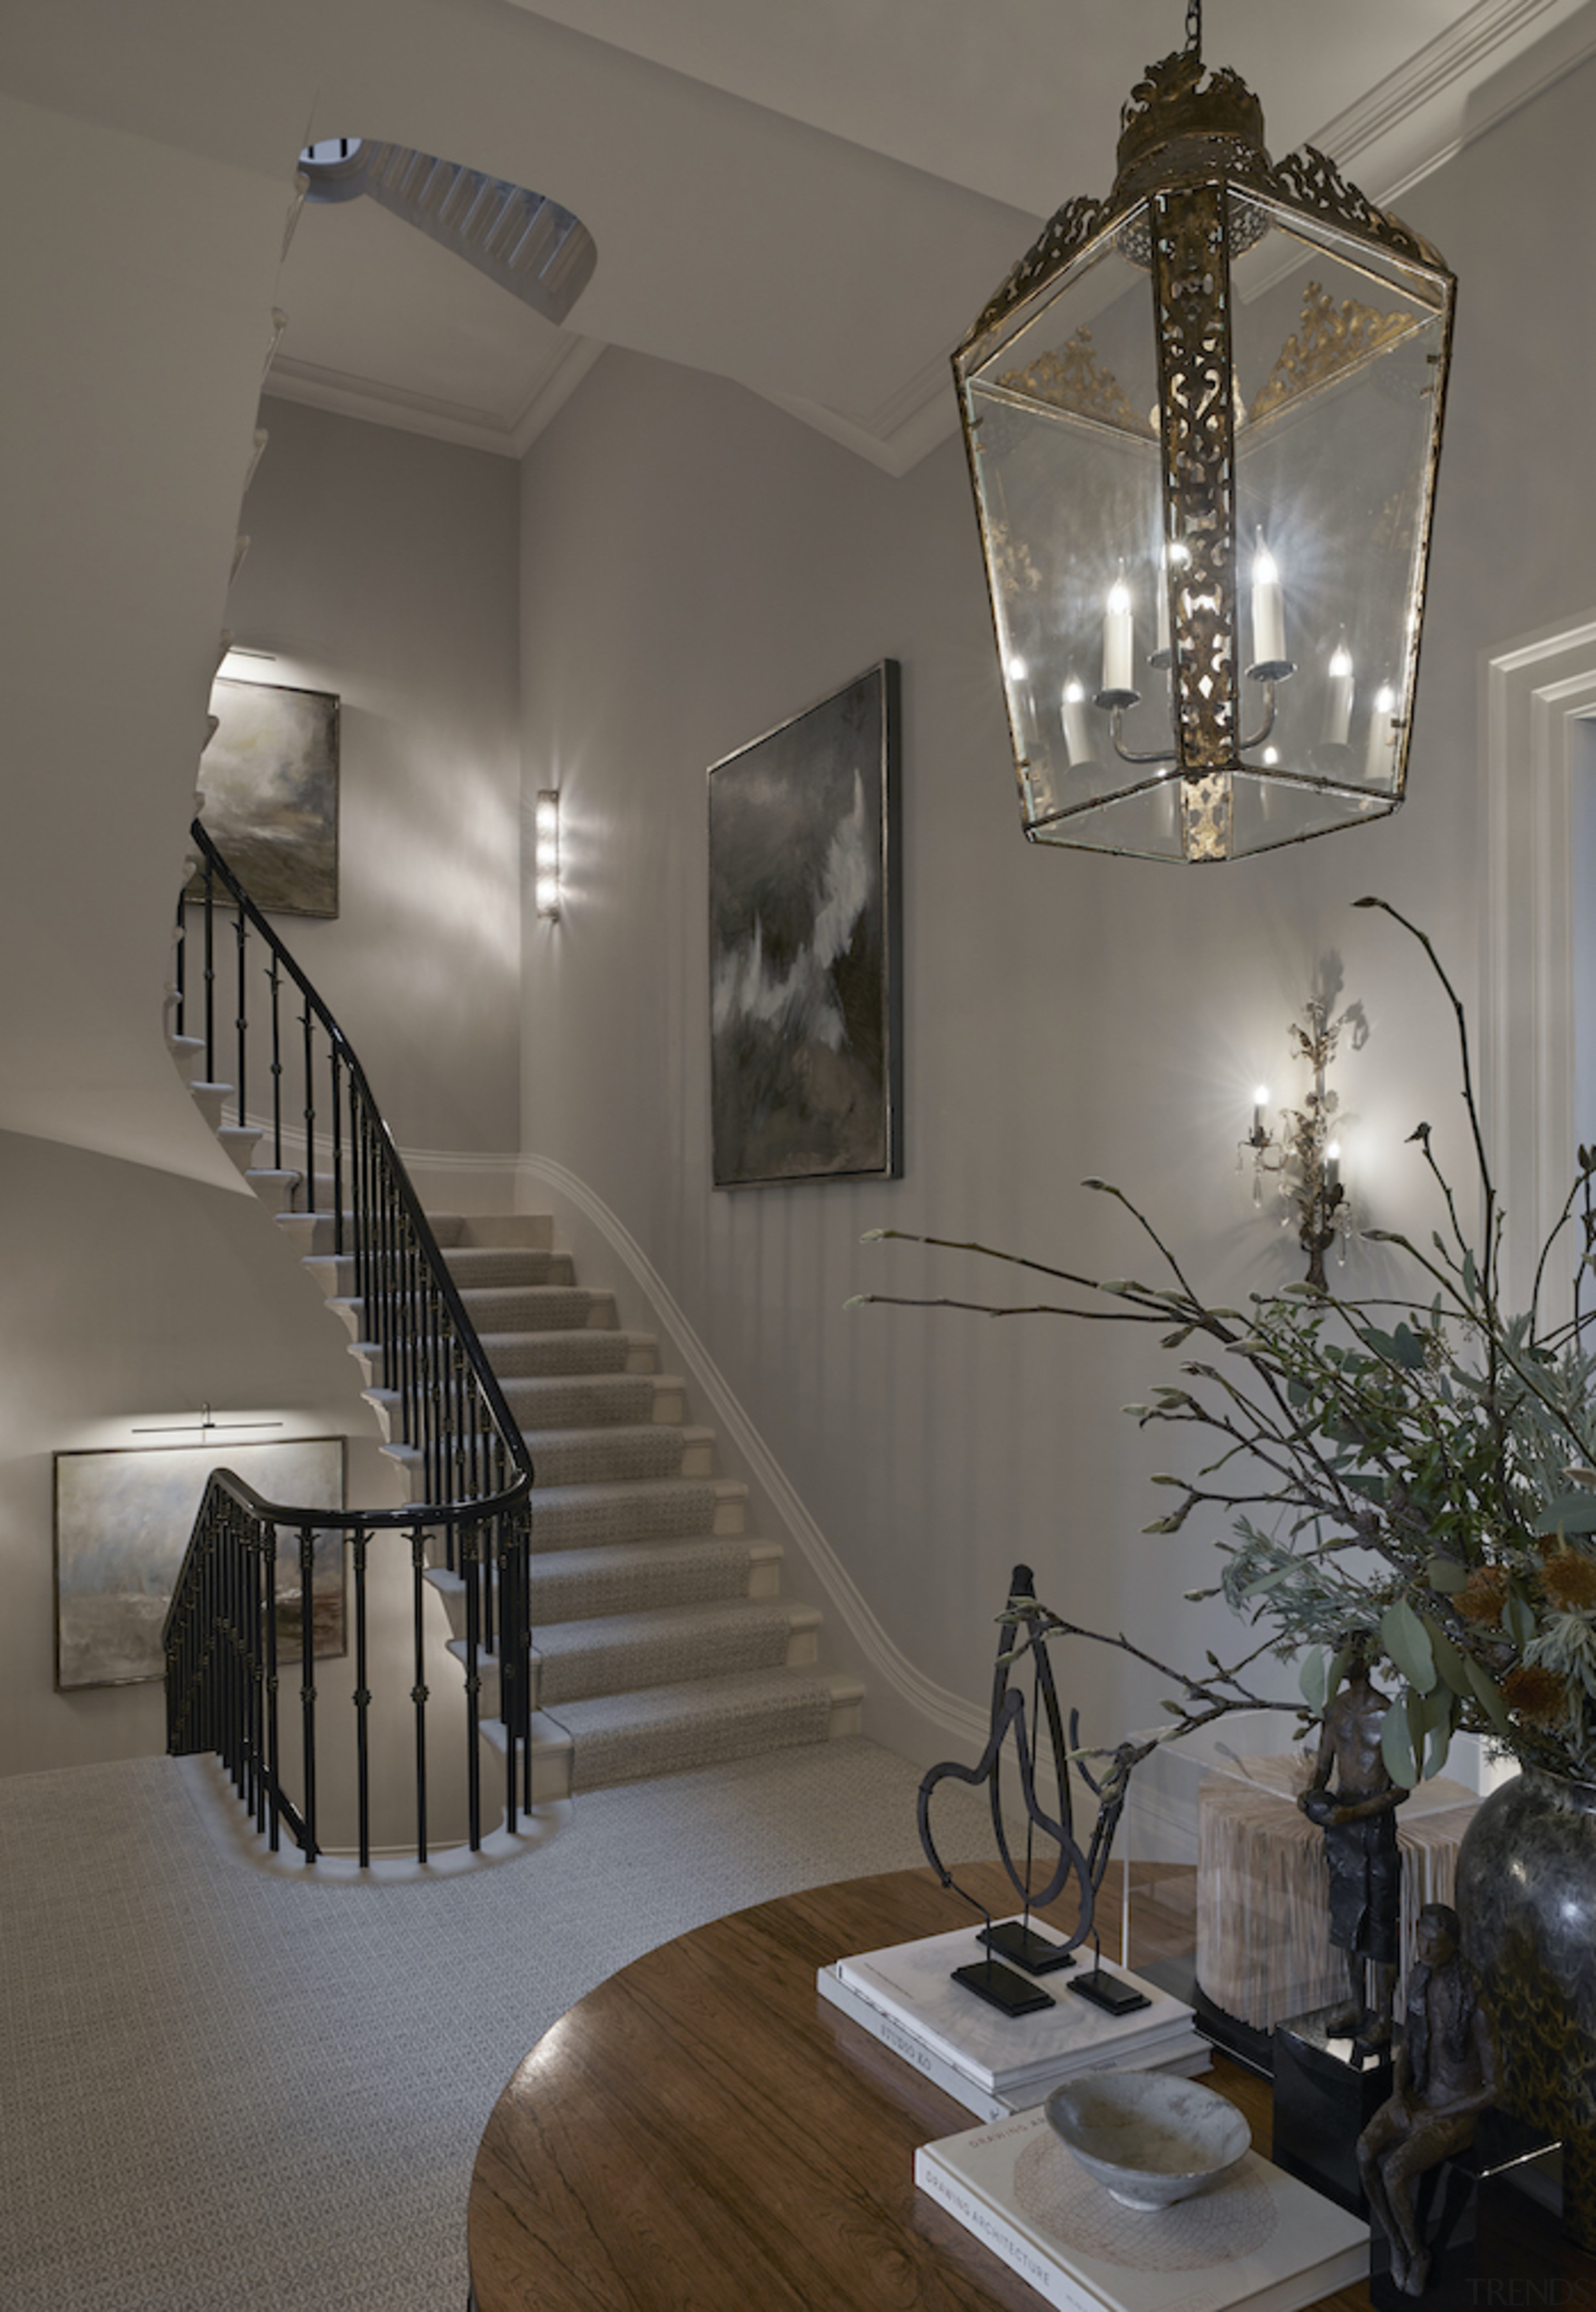 The original layouts, staircase and fireplaces in the